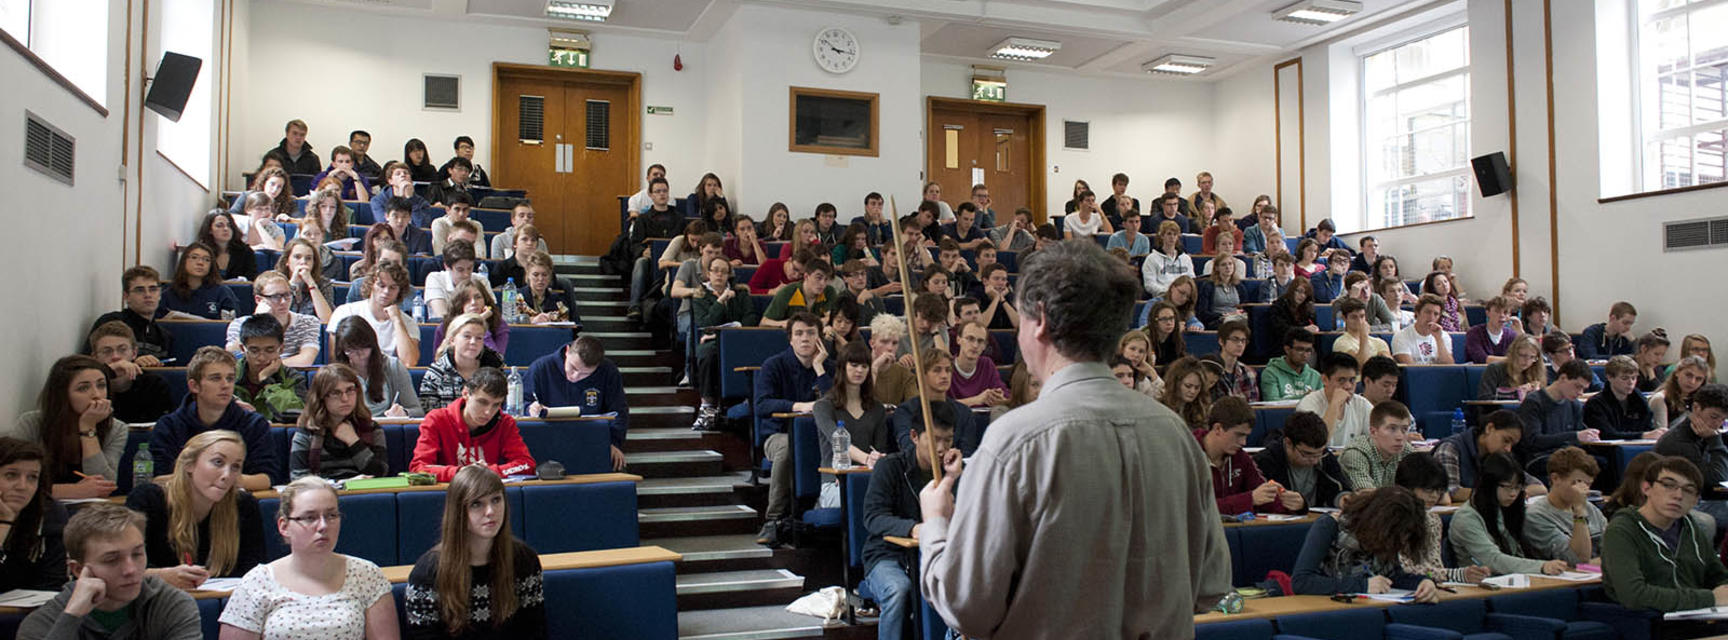 A lecture being delivered in the ICL lecture theatre